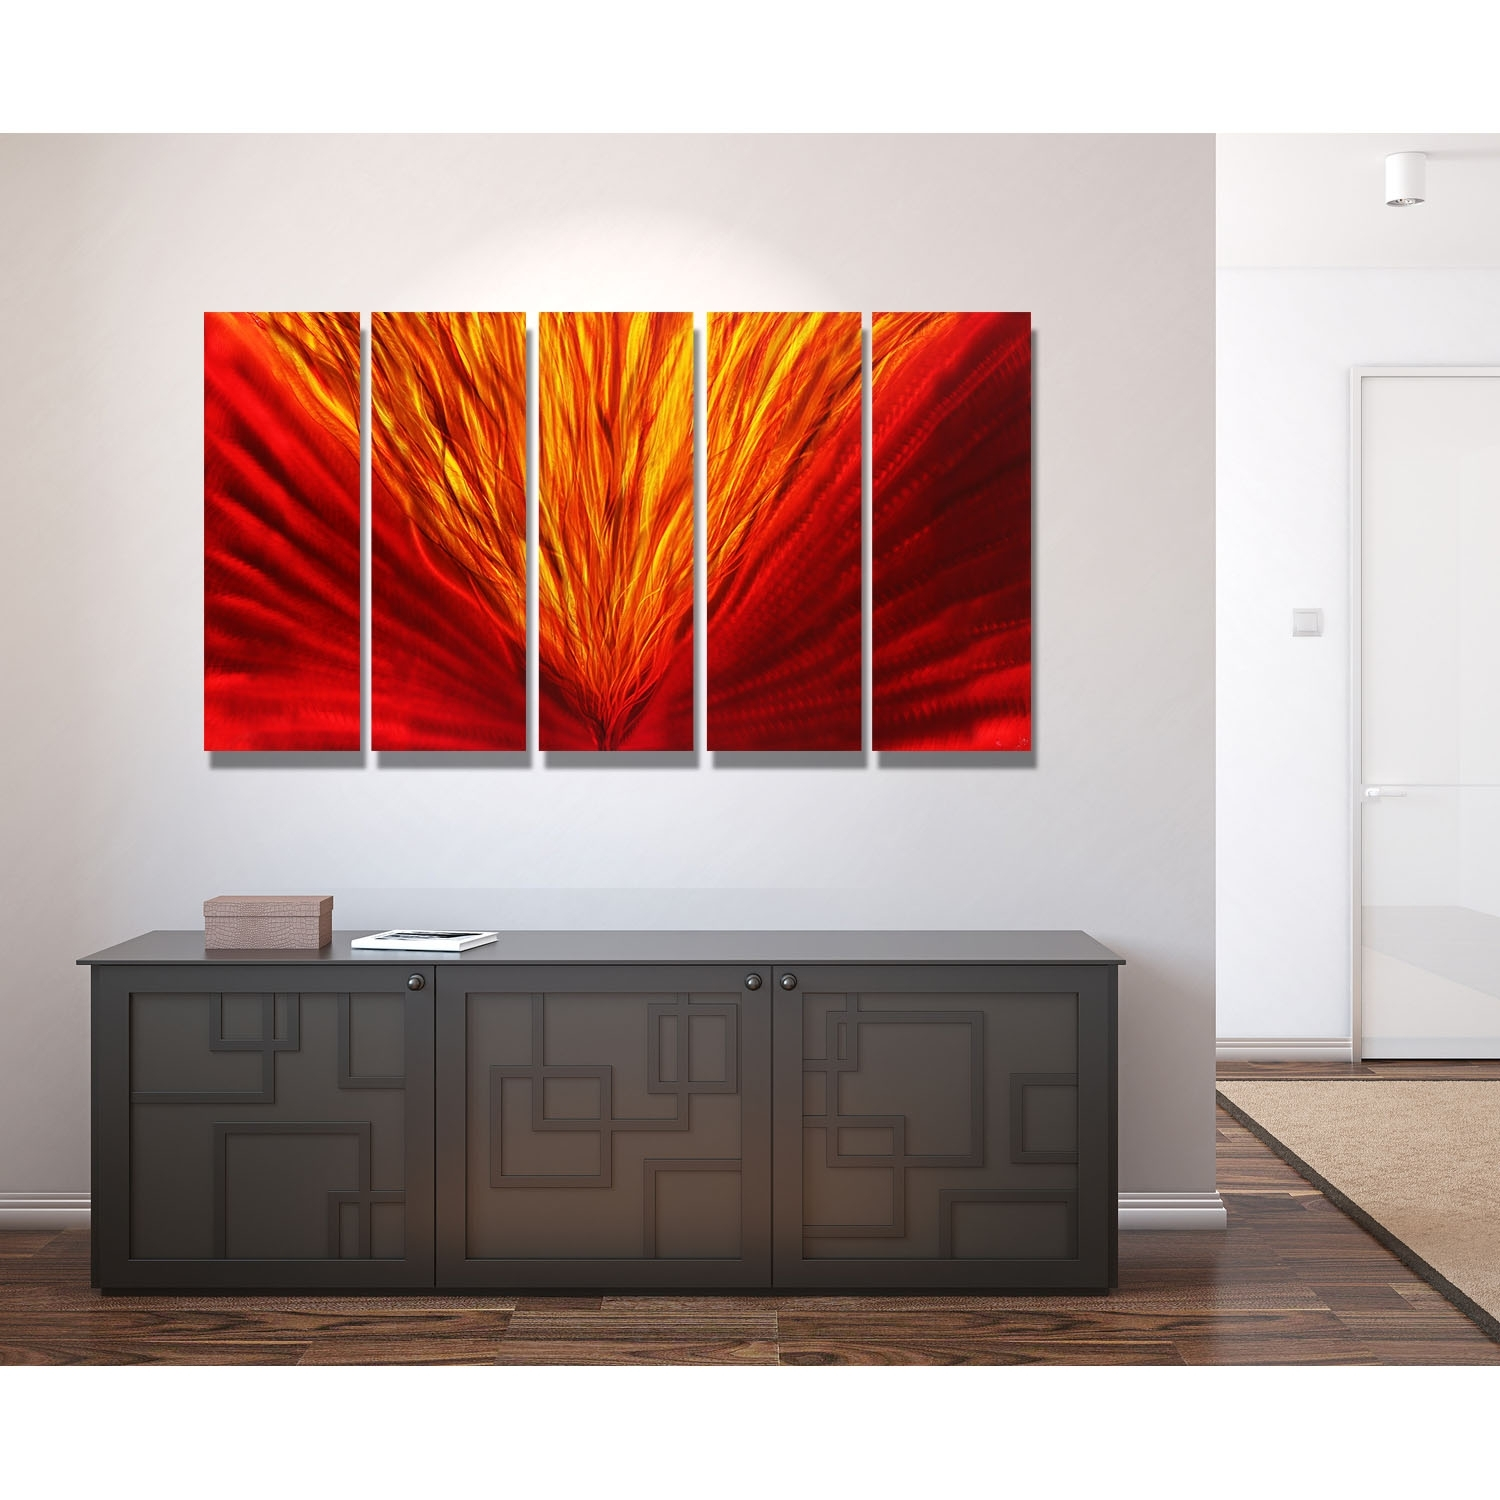 Blaze – Red And Gold Metal Wall Art – 5 Panel Wall Decorjon Inside 5 Panel Wall Art (View 8 of 20)